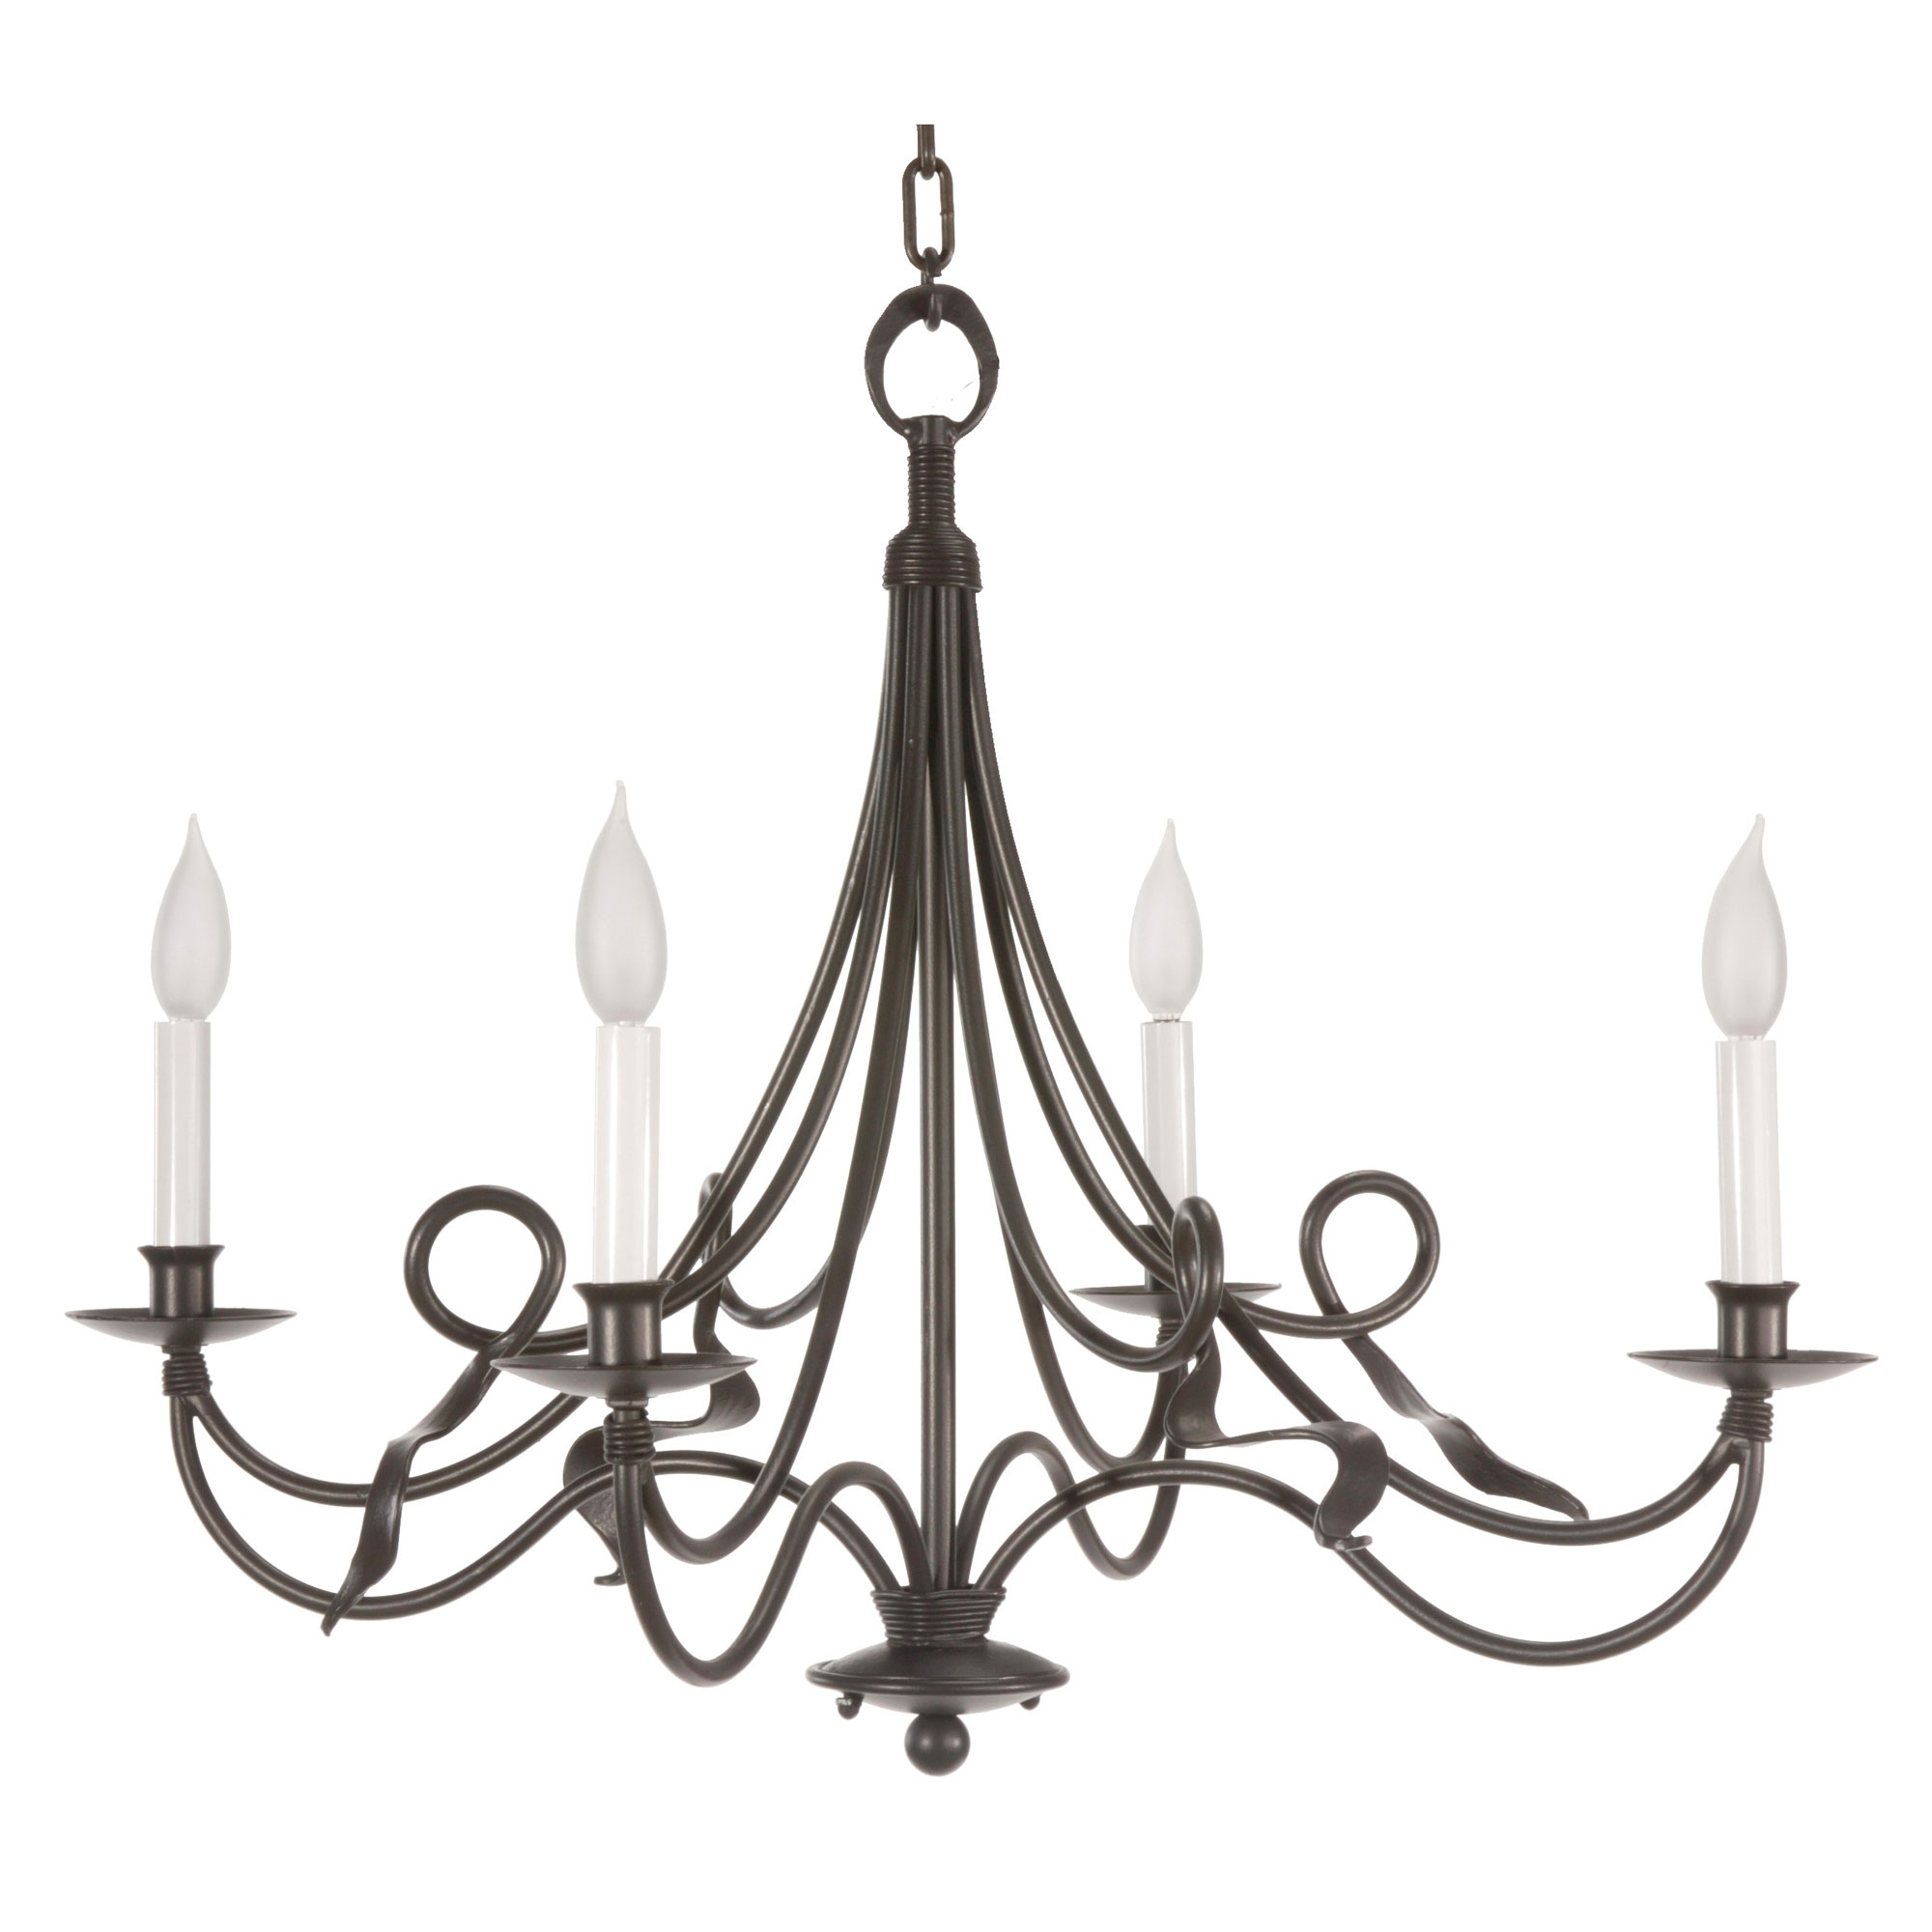 Current Black Color Rustic Cast Iron Chandeliers With Candle Holder For With Regard To Cast Iron Chandelier (View 6 of 20)